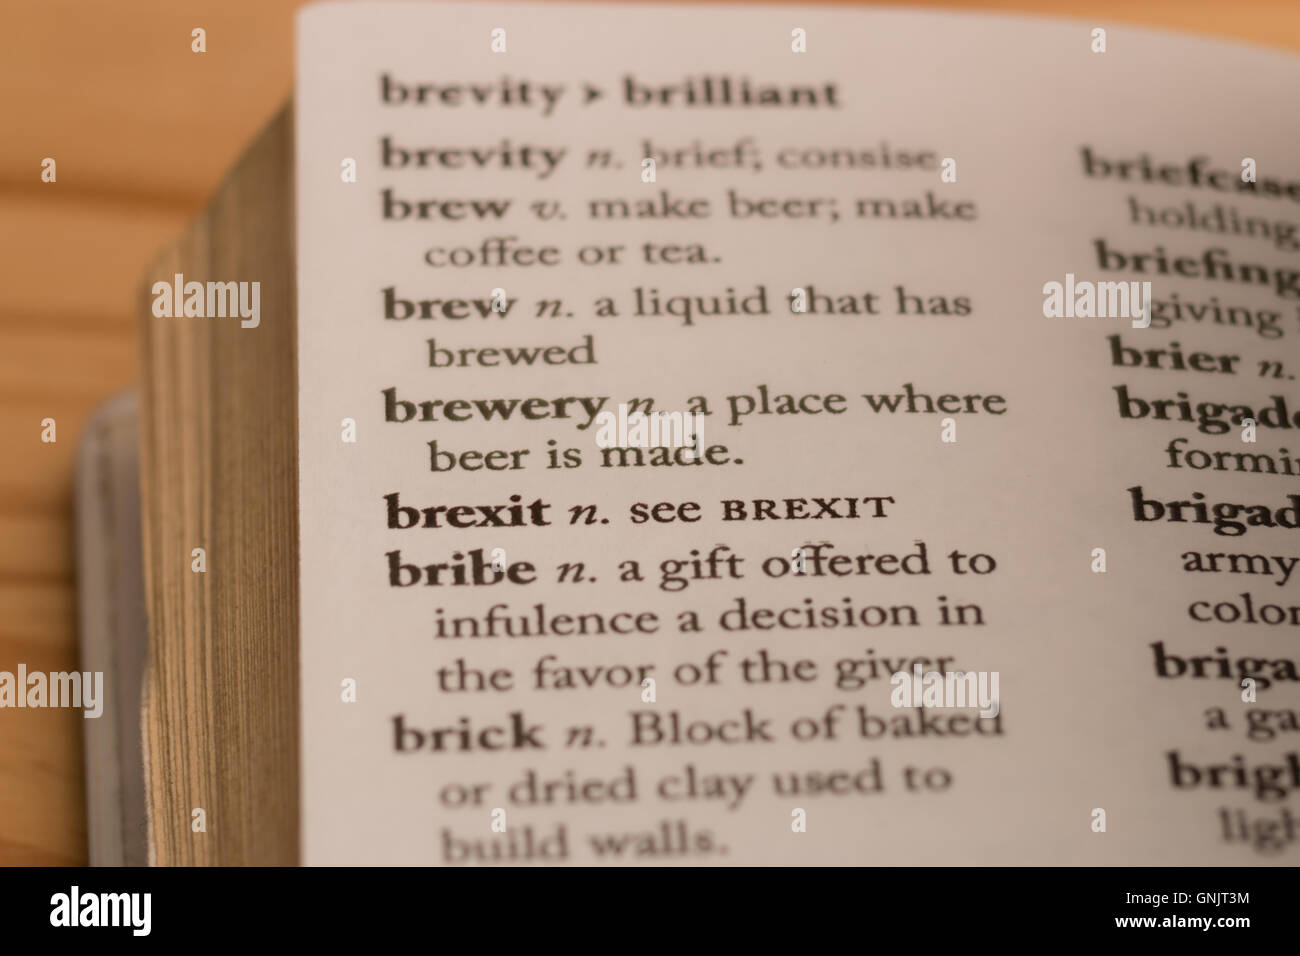 A 'dictionary' definition showing 'Brexit means brexit' - Stock Image